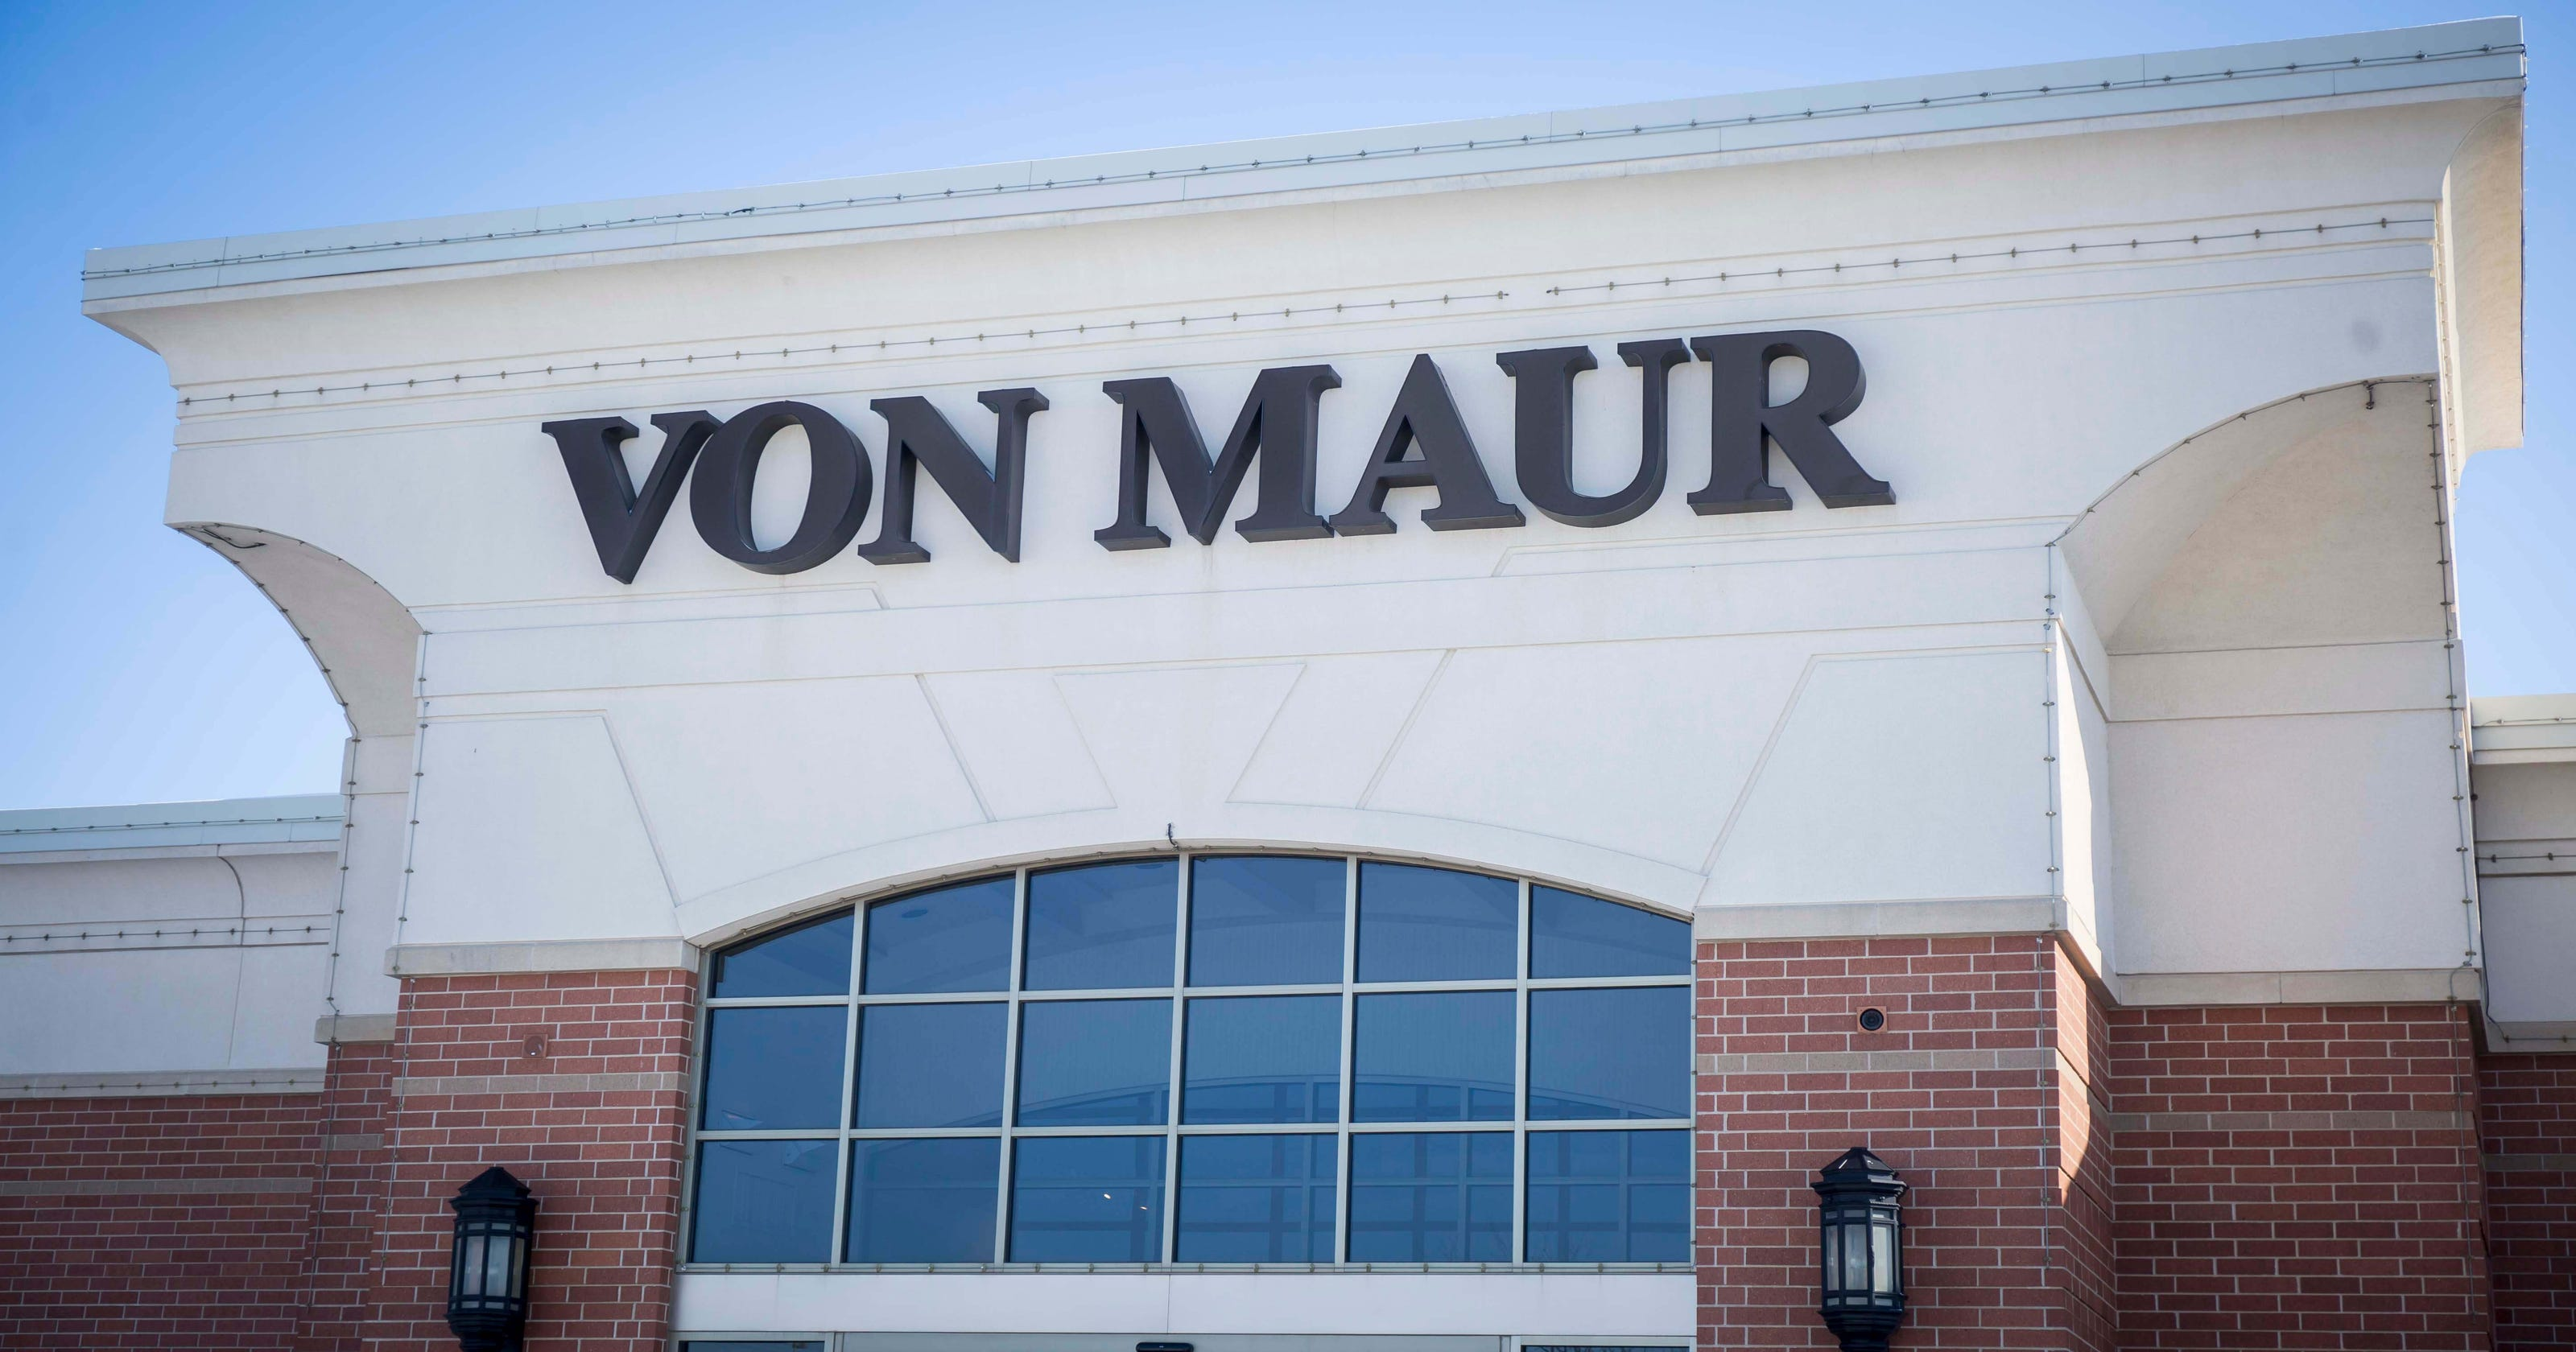 c1f1d60eb35 Von Maur CEO says Des Moines market could be served by 1 store